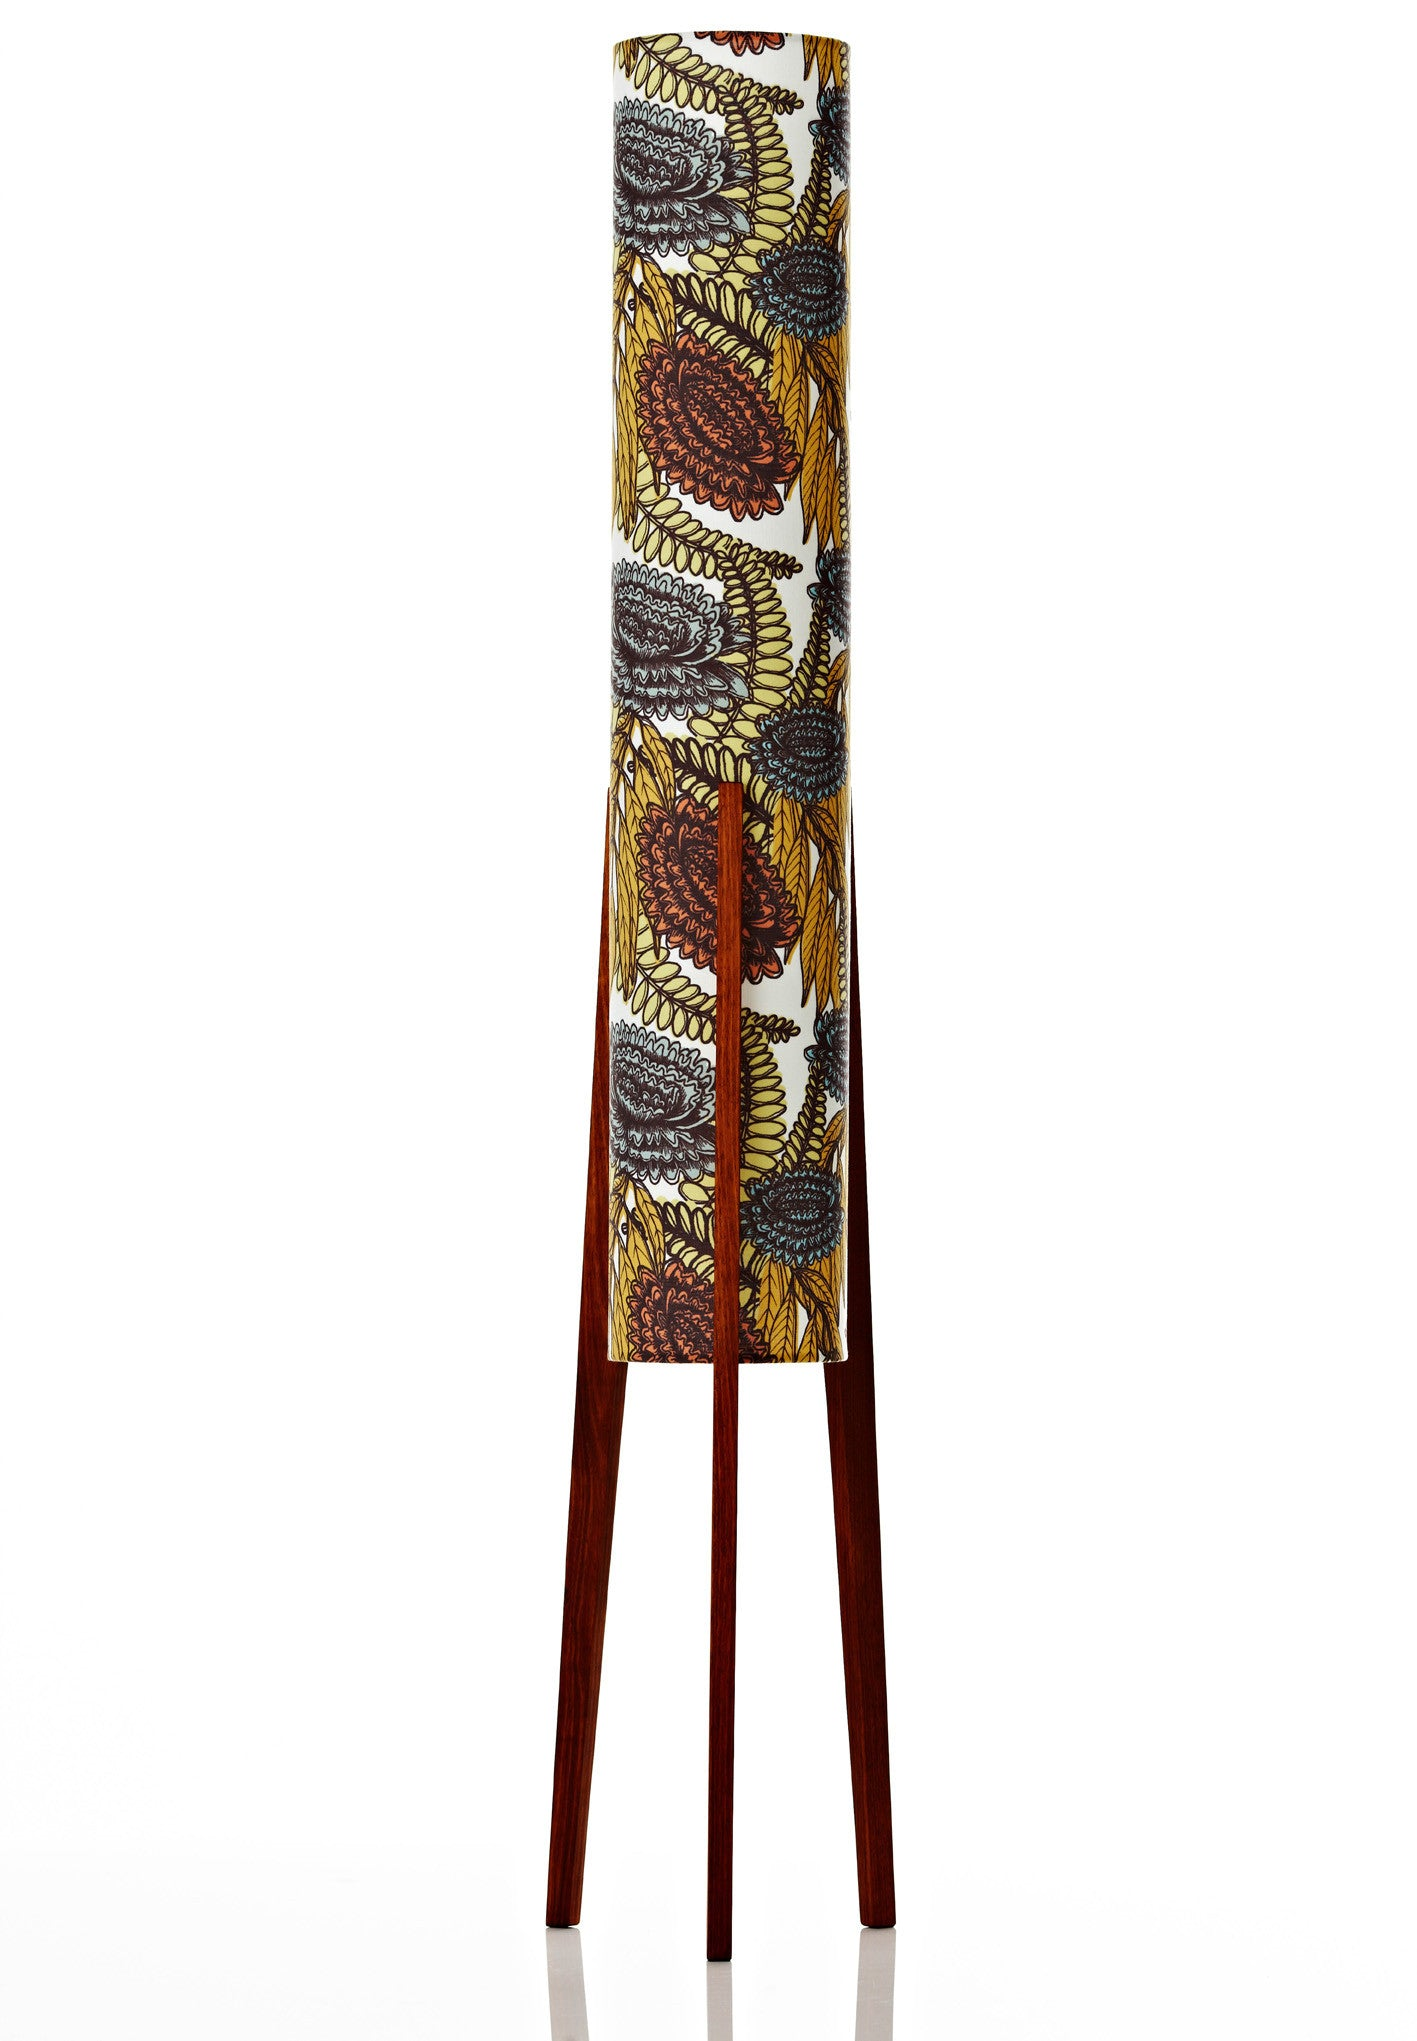 Rocket Floor Lamp Large - Wildflower Burnt